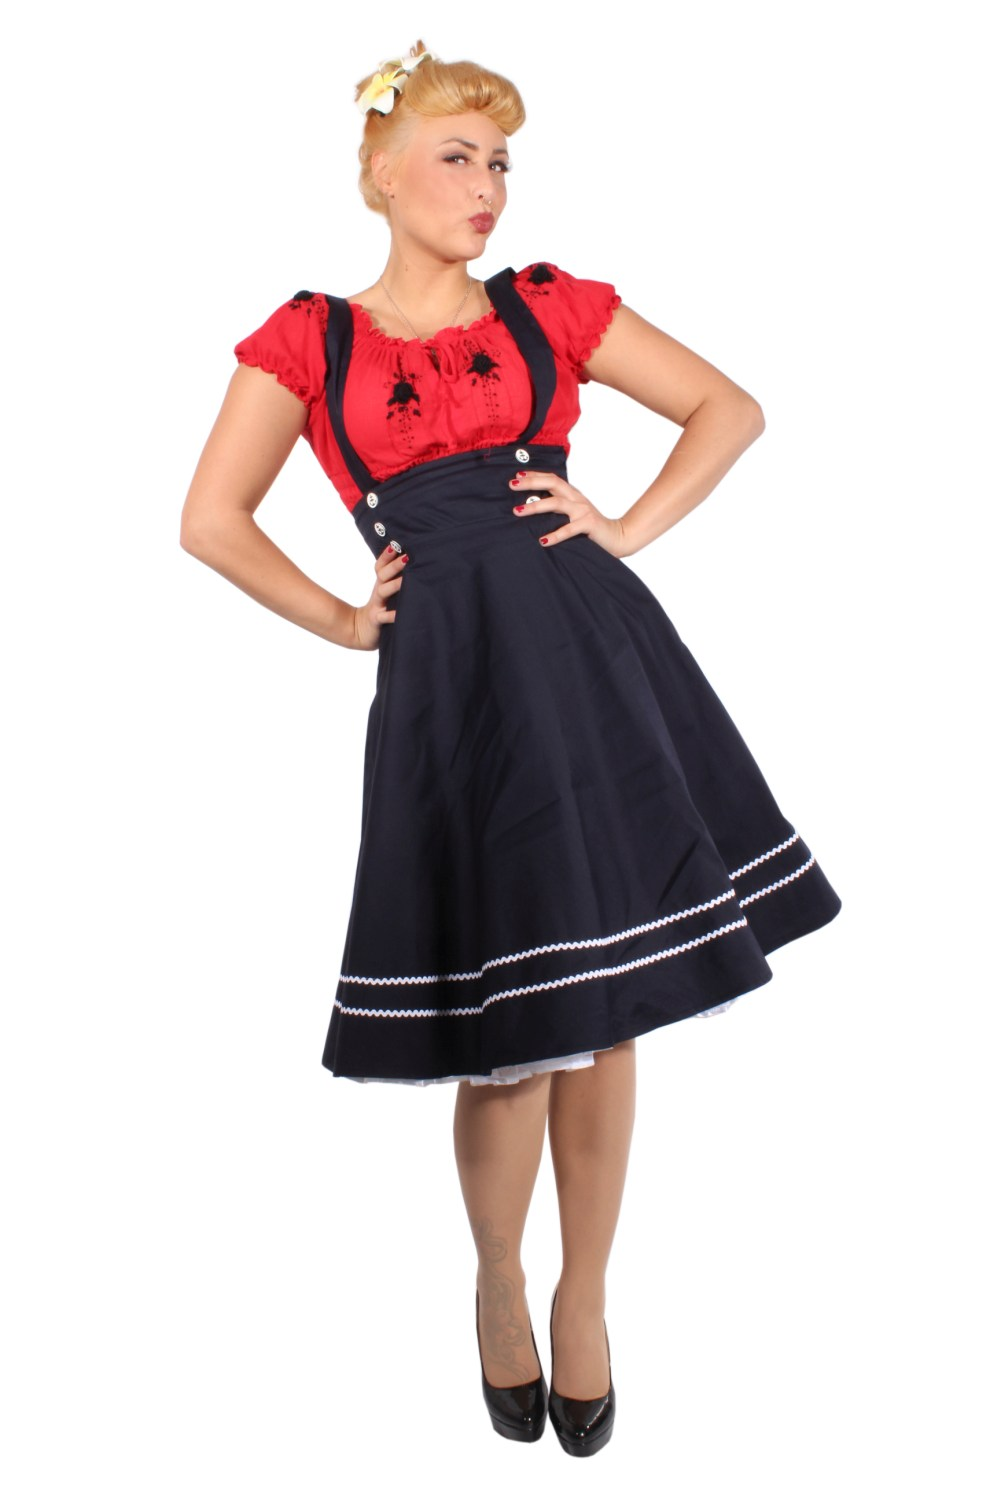 RETRO Sailor rockabilly Hosenträger Anker SWING ROCK Tellerrock Rock